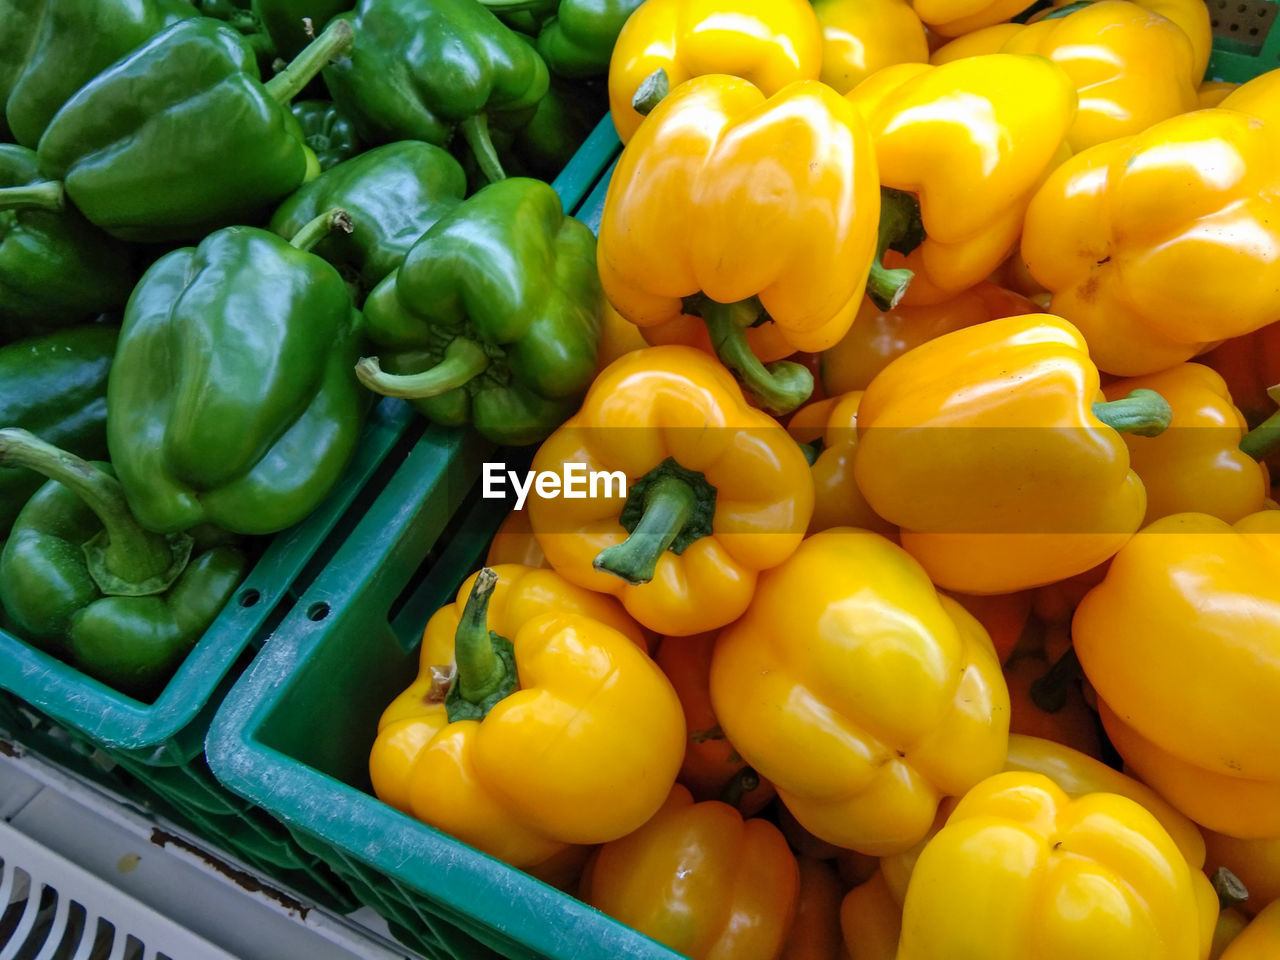 YELLOW BELL PEPPERS FOR SALE IN MARKET STALL